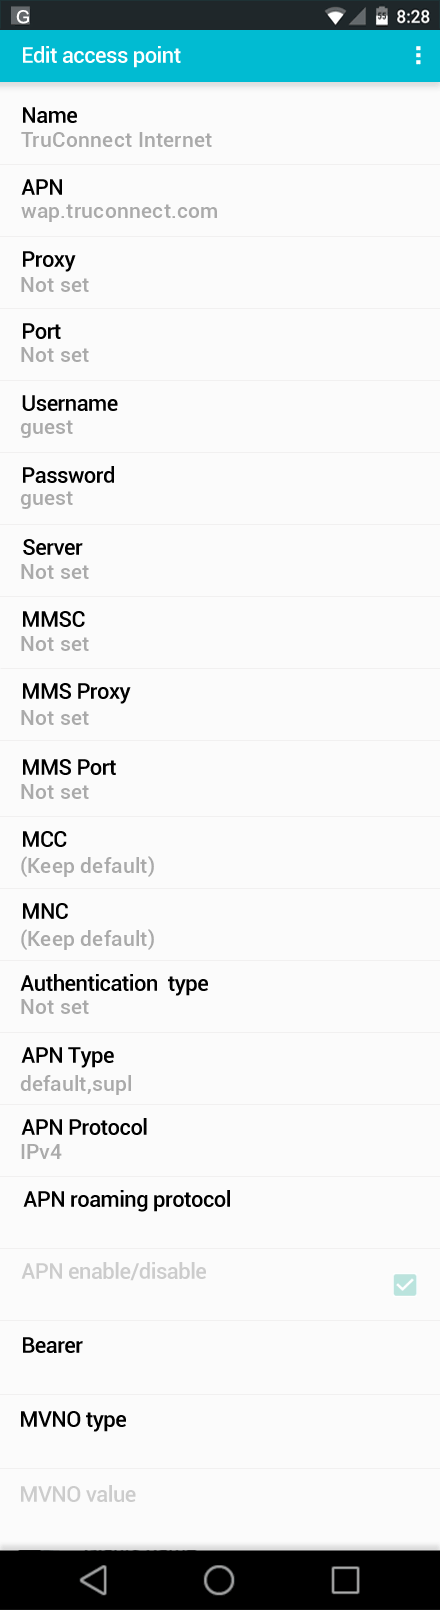 TruConnect Internet APN settings for Android screenshot